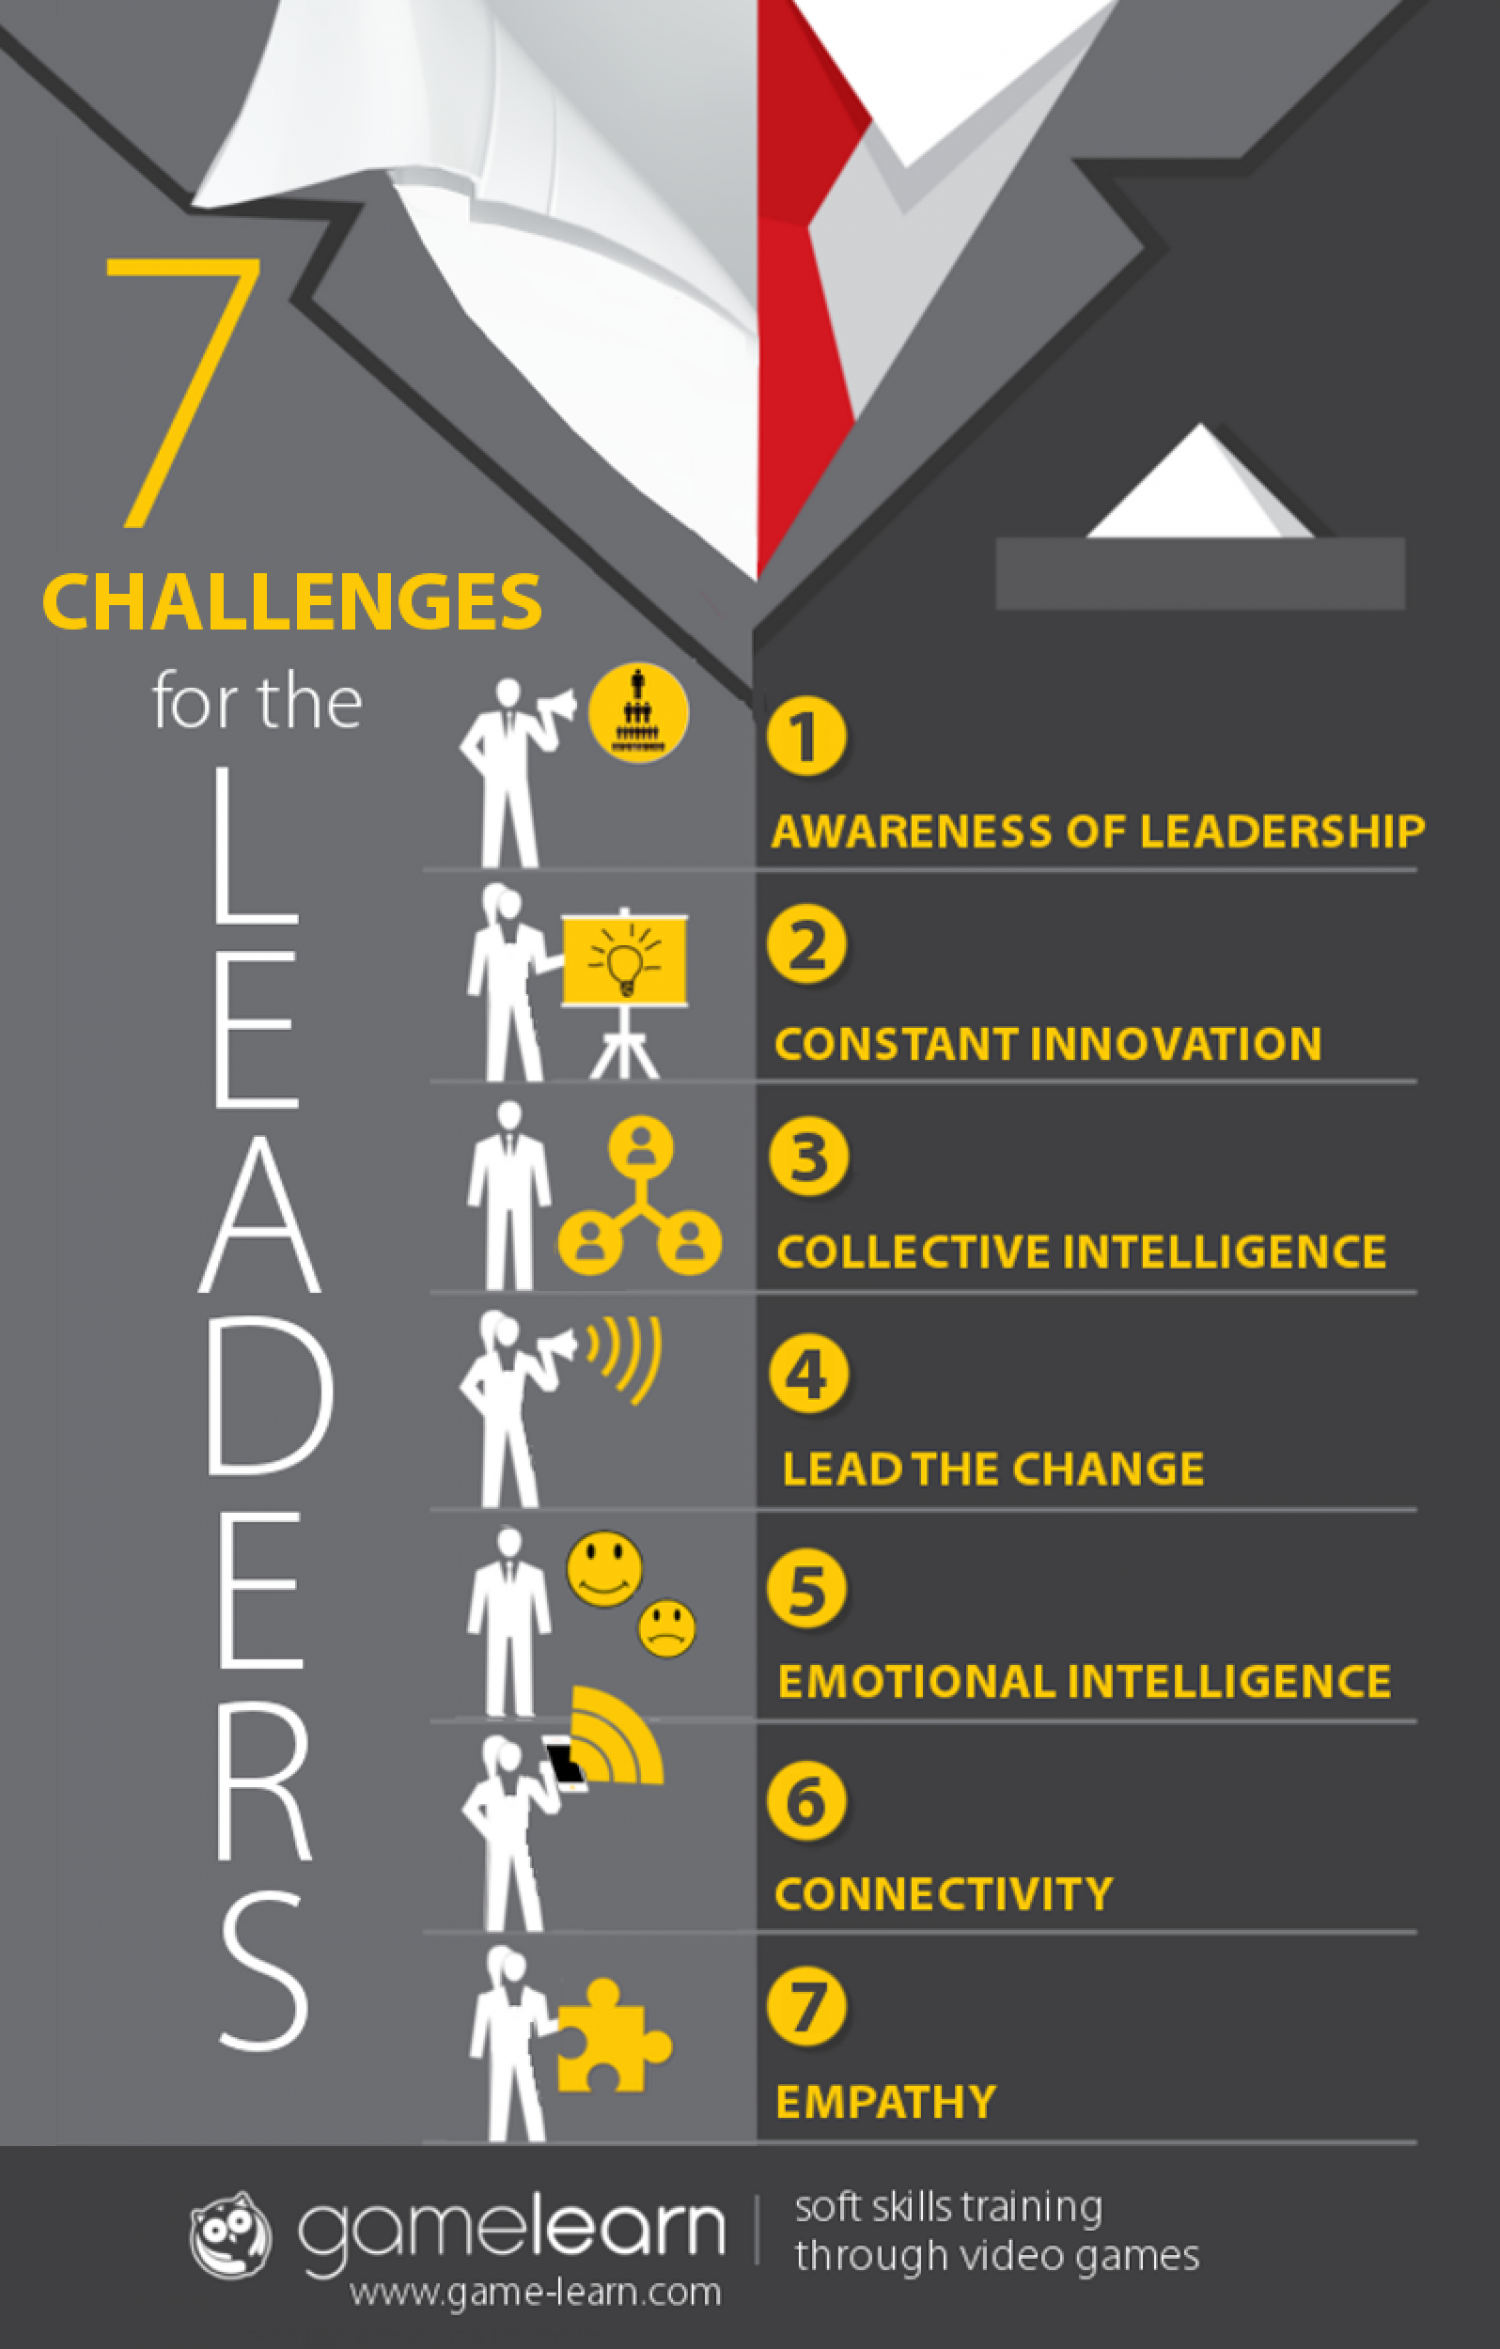 The 7 Challenges for the Leaders of Tomorrow Infographic